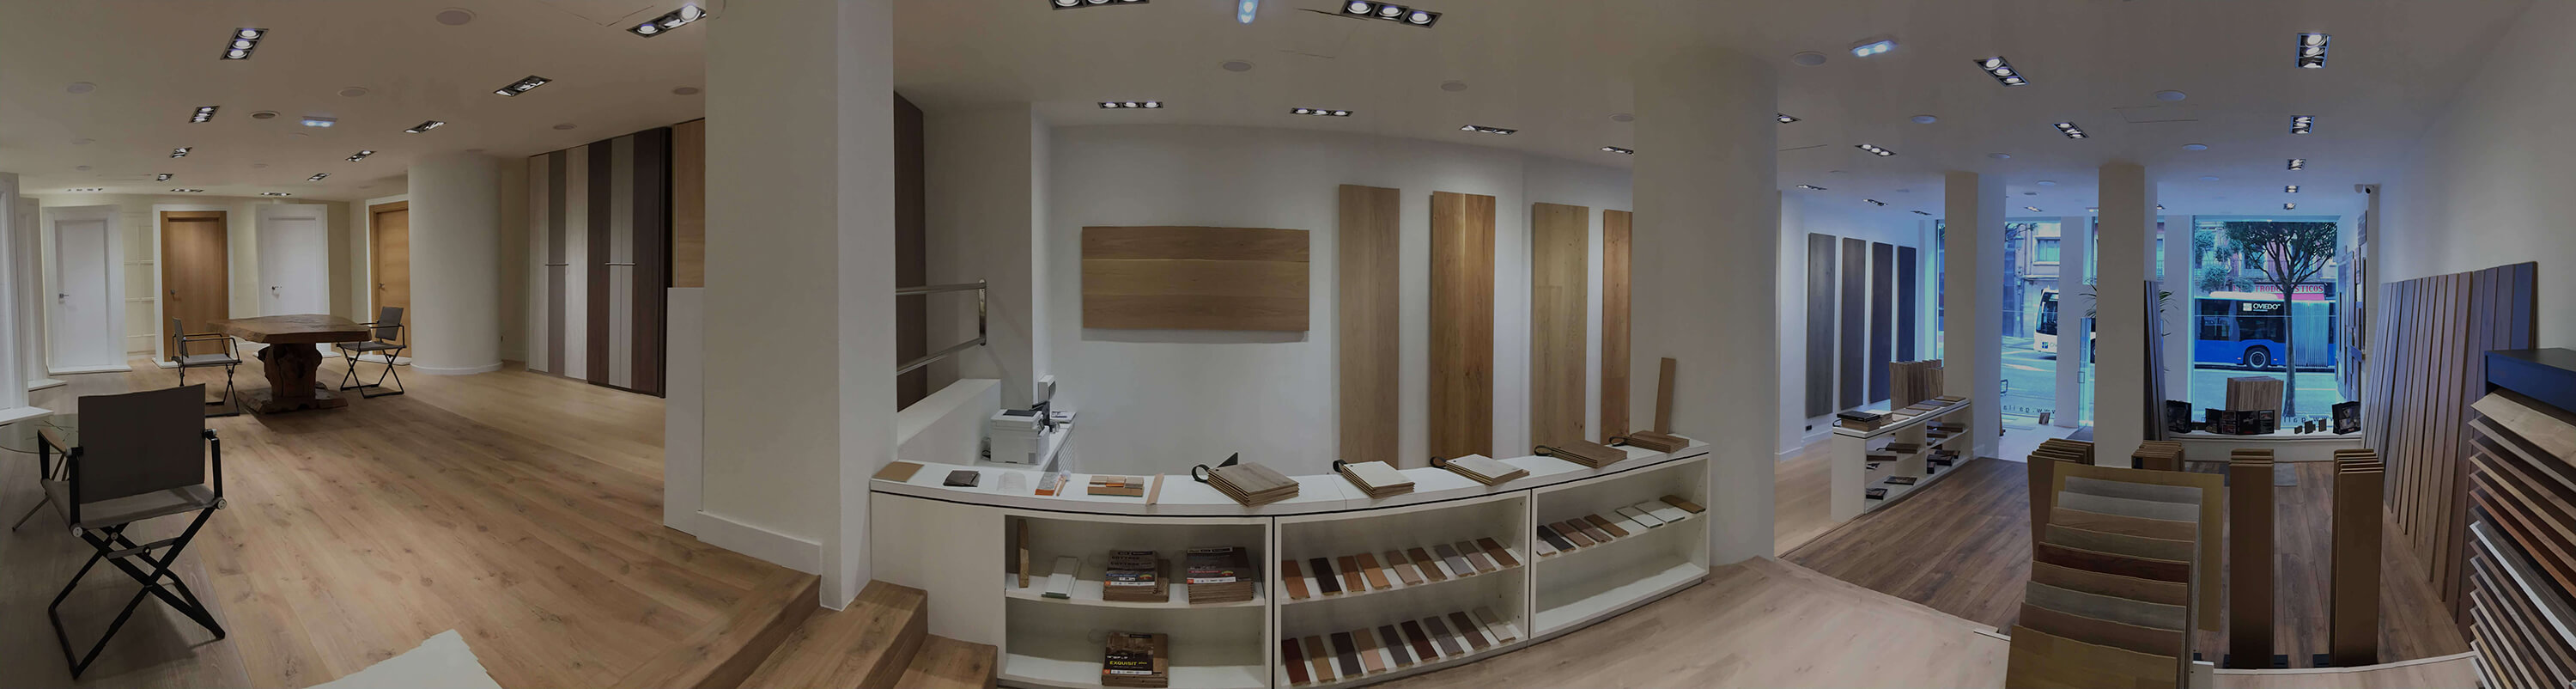 Vista interior showroom de Gallart en Oviedo